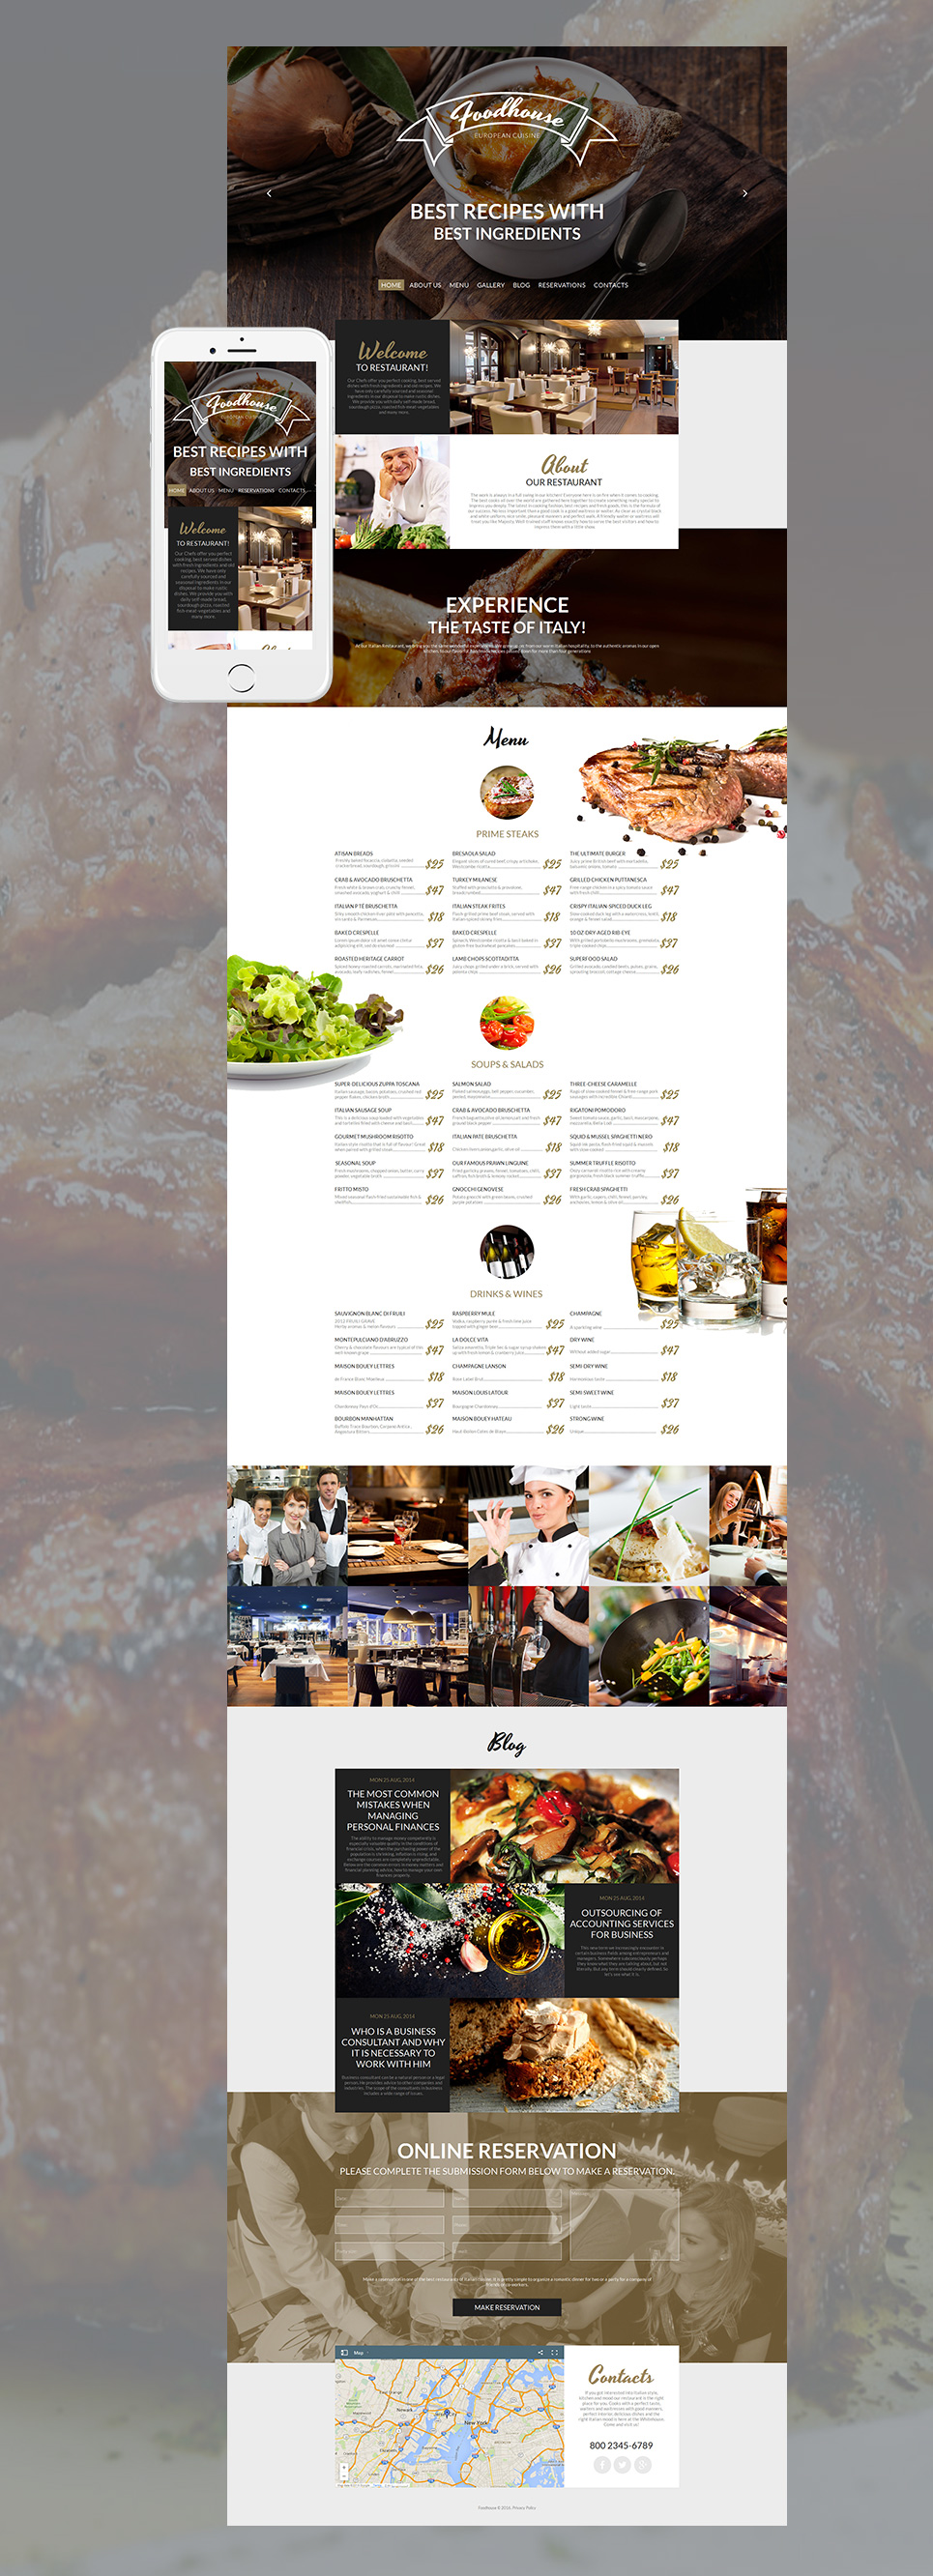 Cafe and Restaurant MotoCMS HTML Template #58475 - image